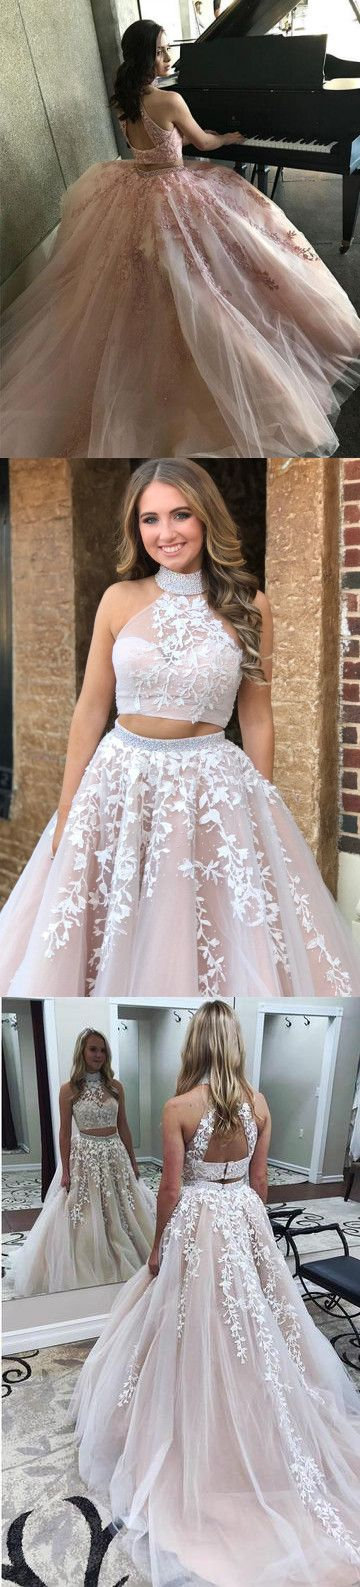 Red Two Piece Prom Dress Vintage Lace Tulle High Neck Prom Dress #ER296